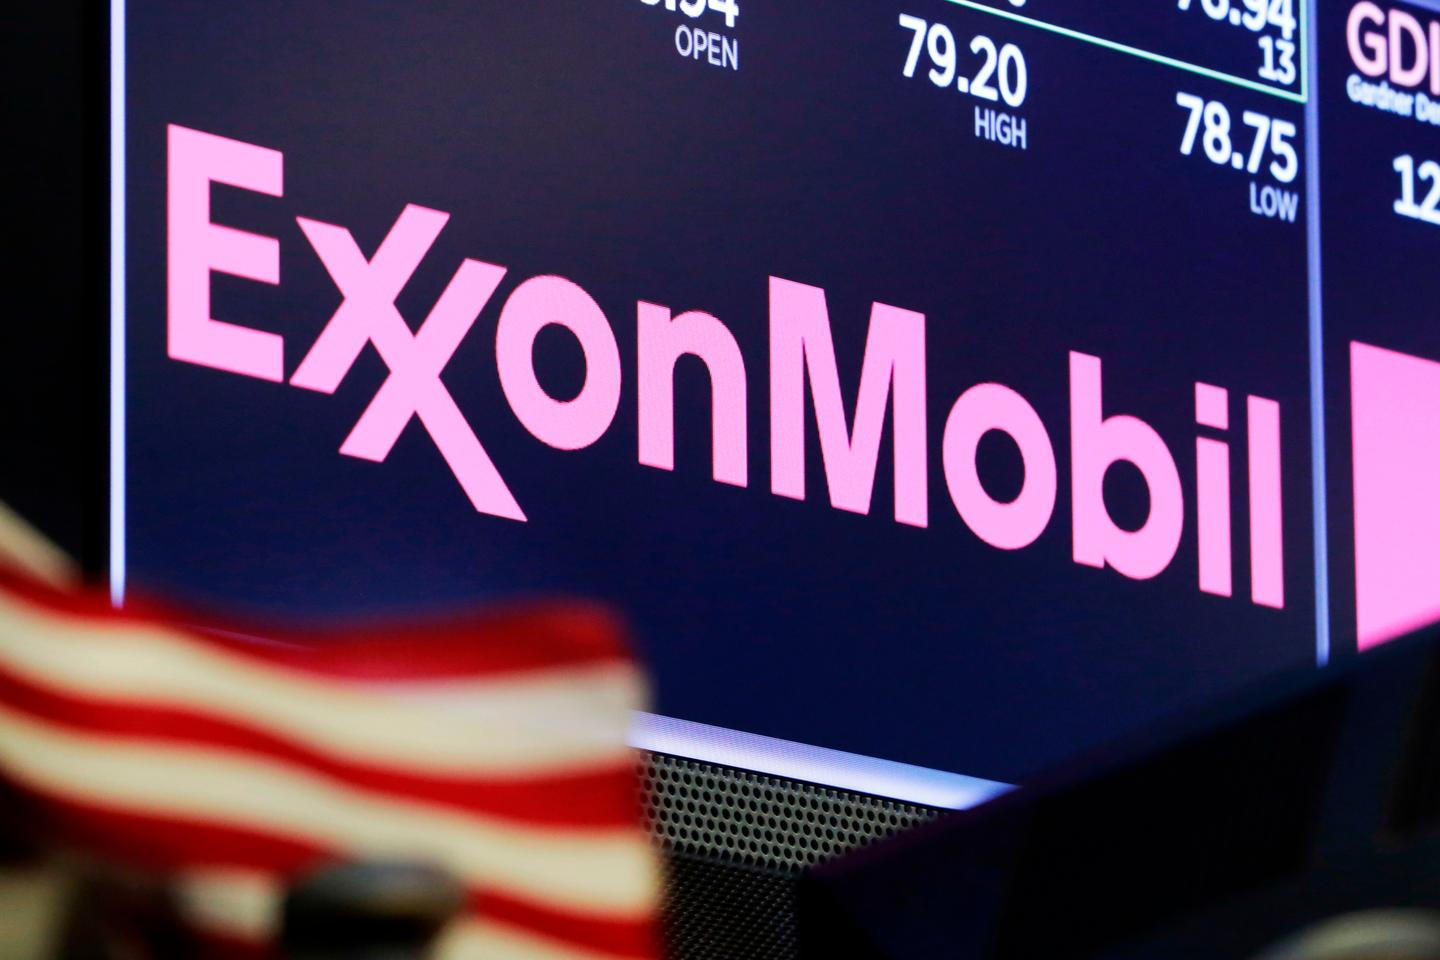 Massachusetts' Lawsuit Against ExxonMobil Brings New Meaning to Silly